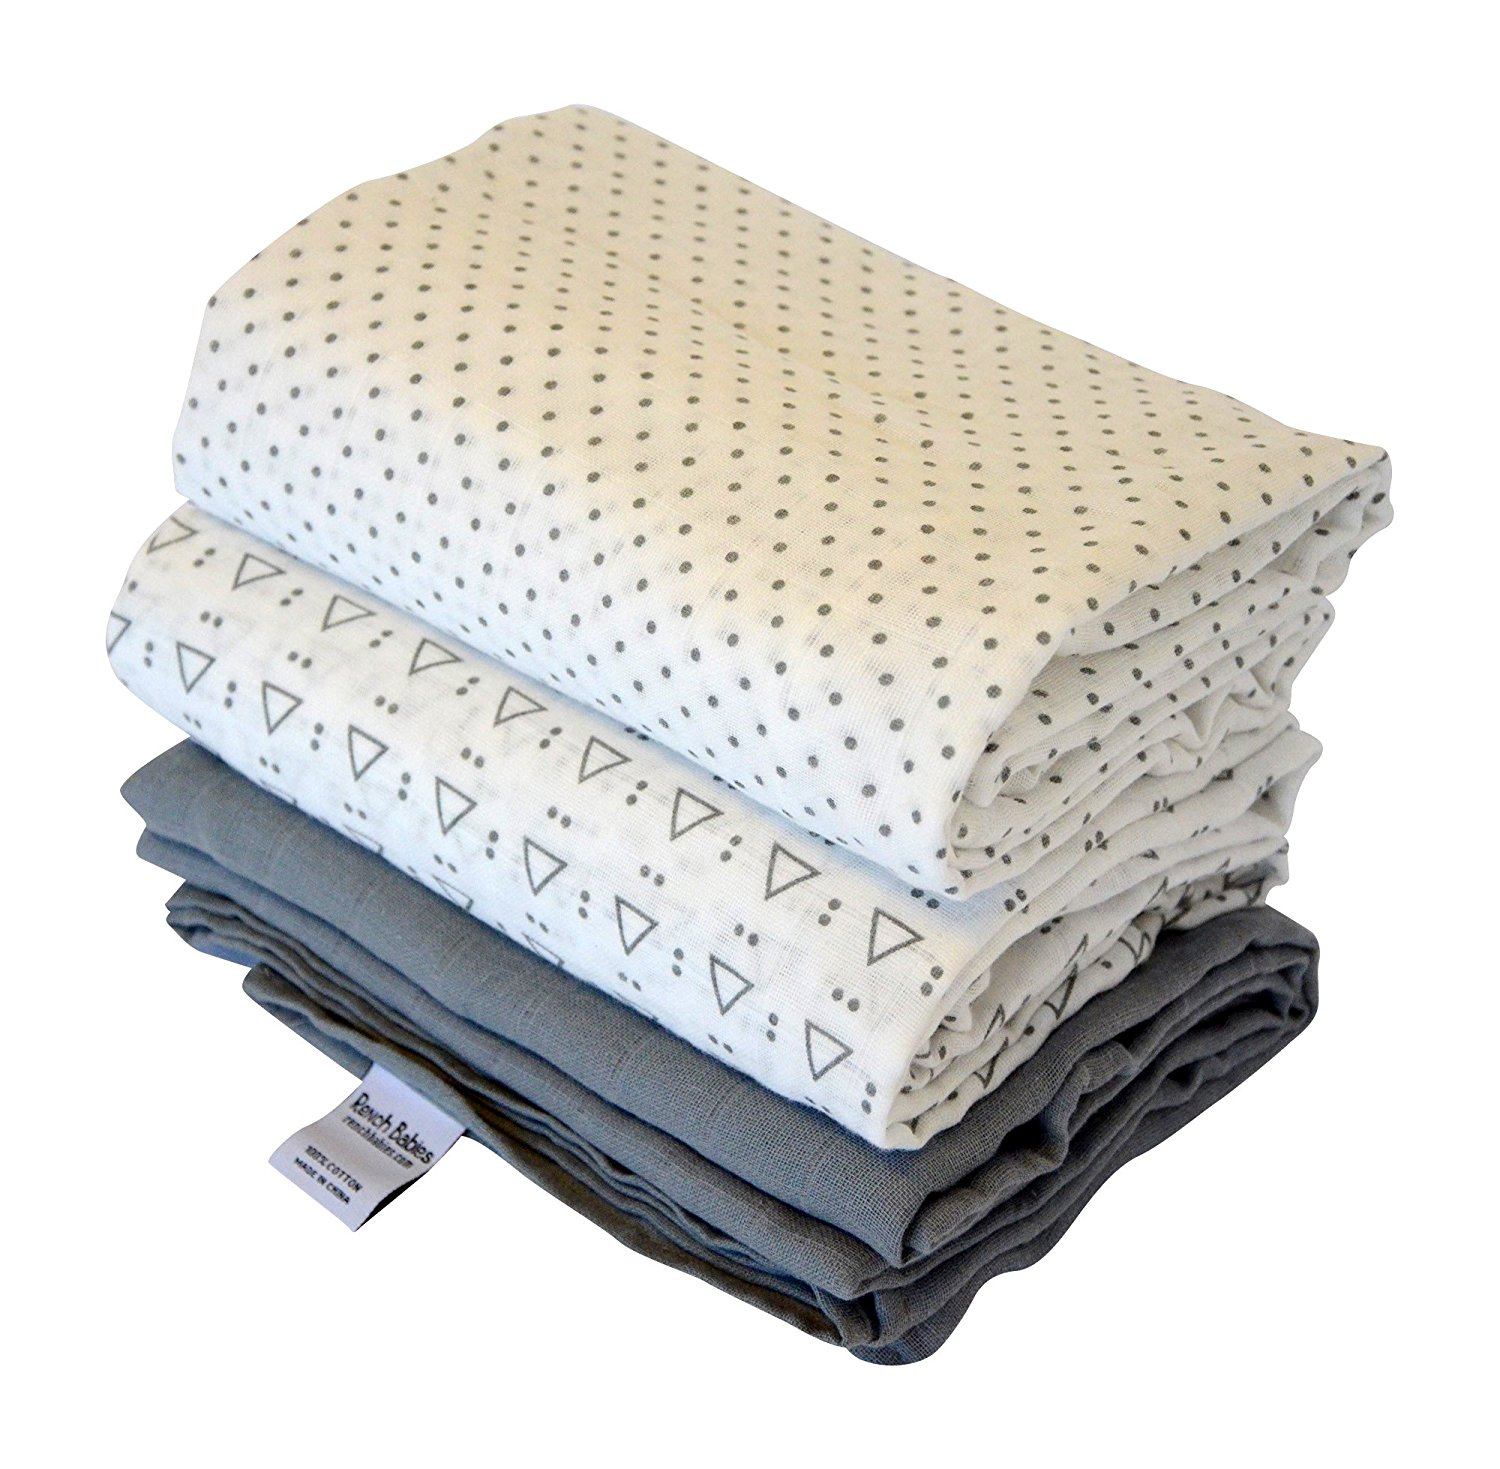 High quality machine grade fitted crib sheet 100% organic jersey cotton With Good After-sale Service